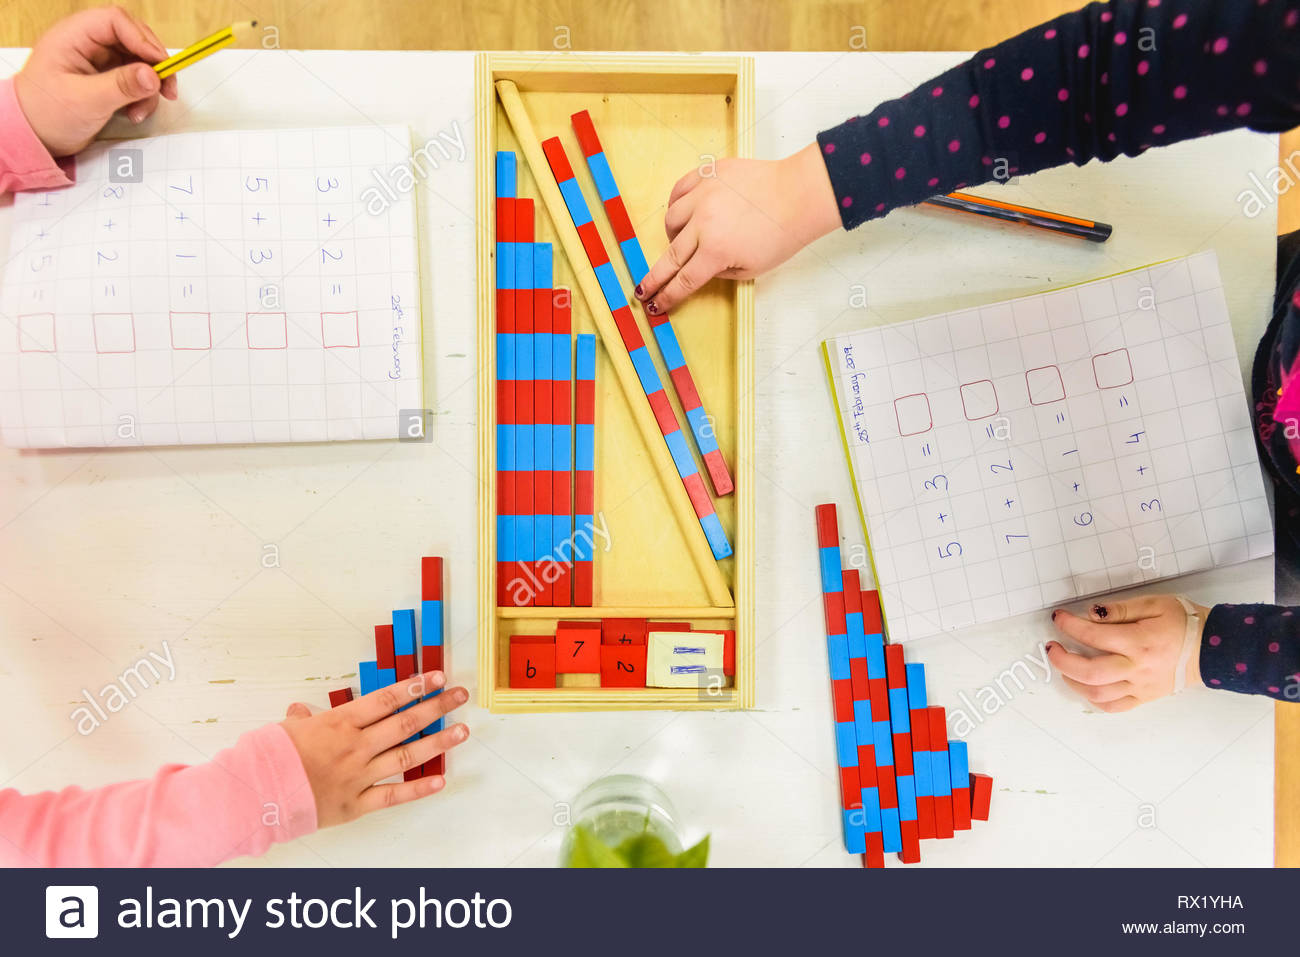 Child Worksheet School Writing Stock Photos Amp Child